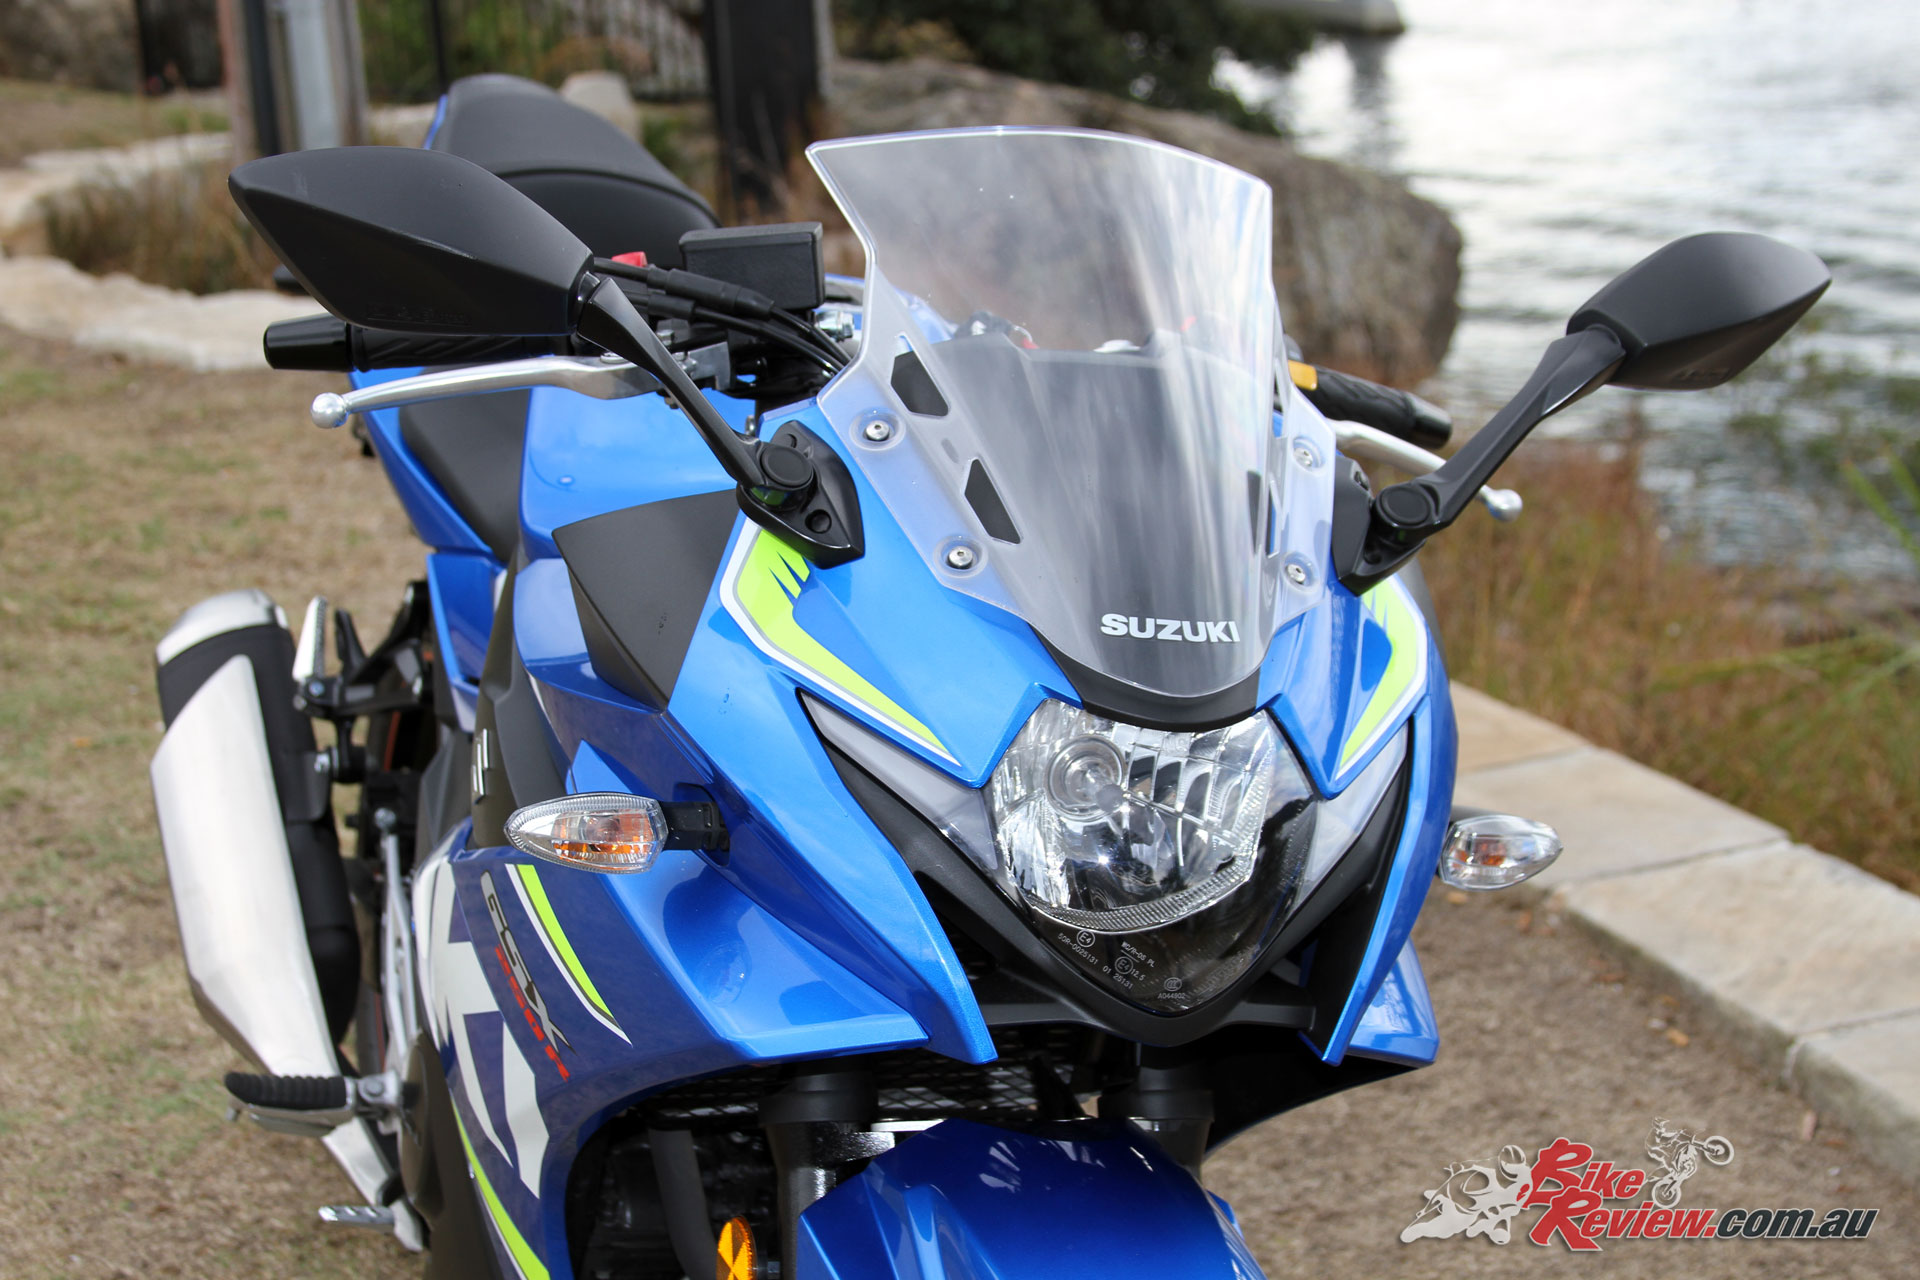 The GSX250R features a standard halogen headlight with LED daytime running lights for extra visibility and offers an aggressive sportsbike aspect to the bike